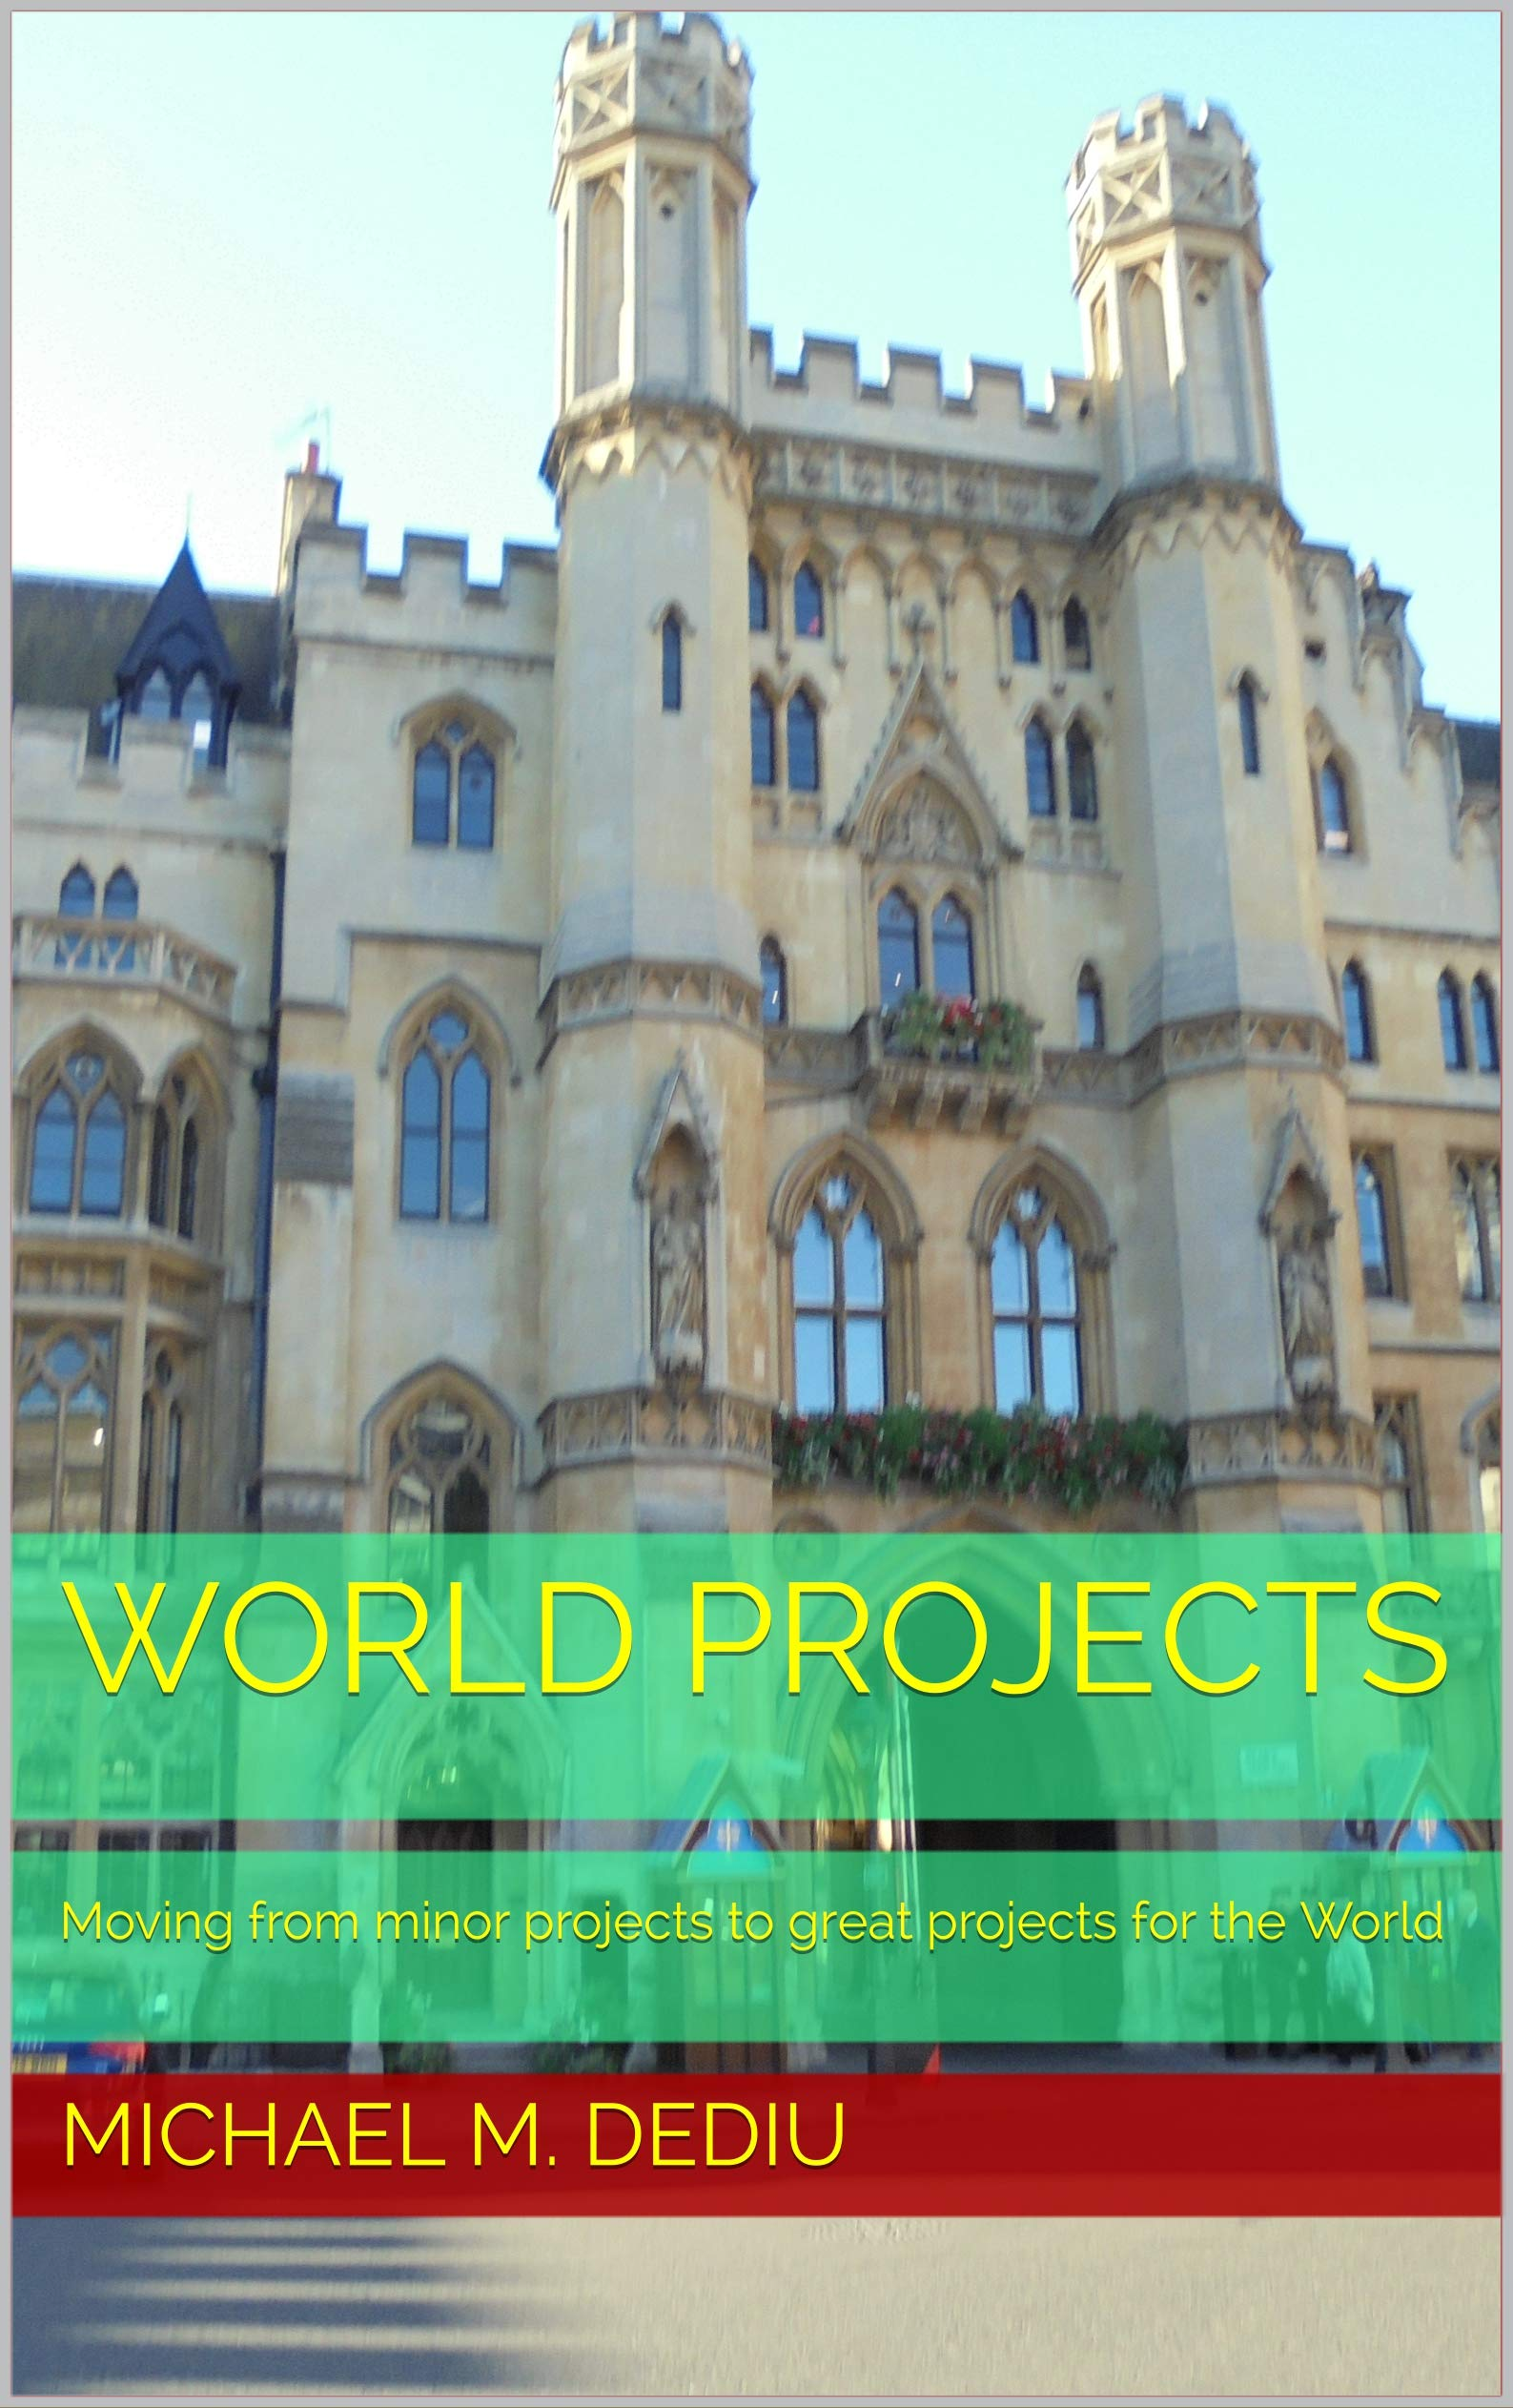 World Projects: Moving from minor projects to great projects for the World